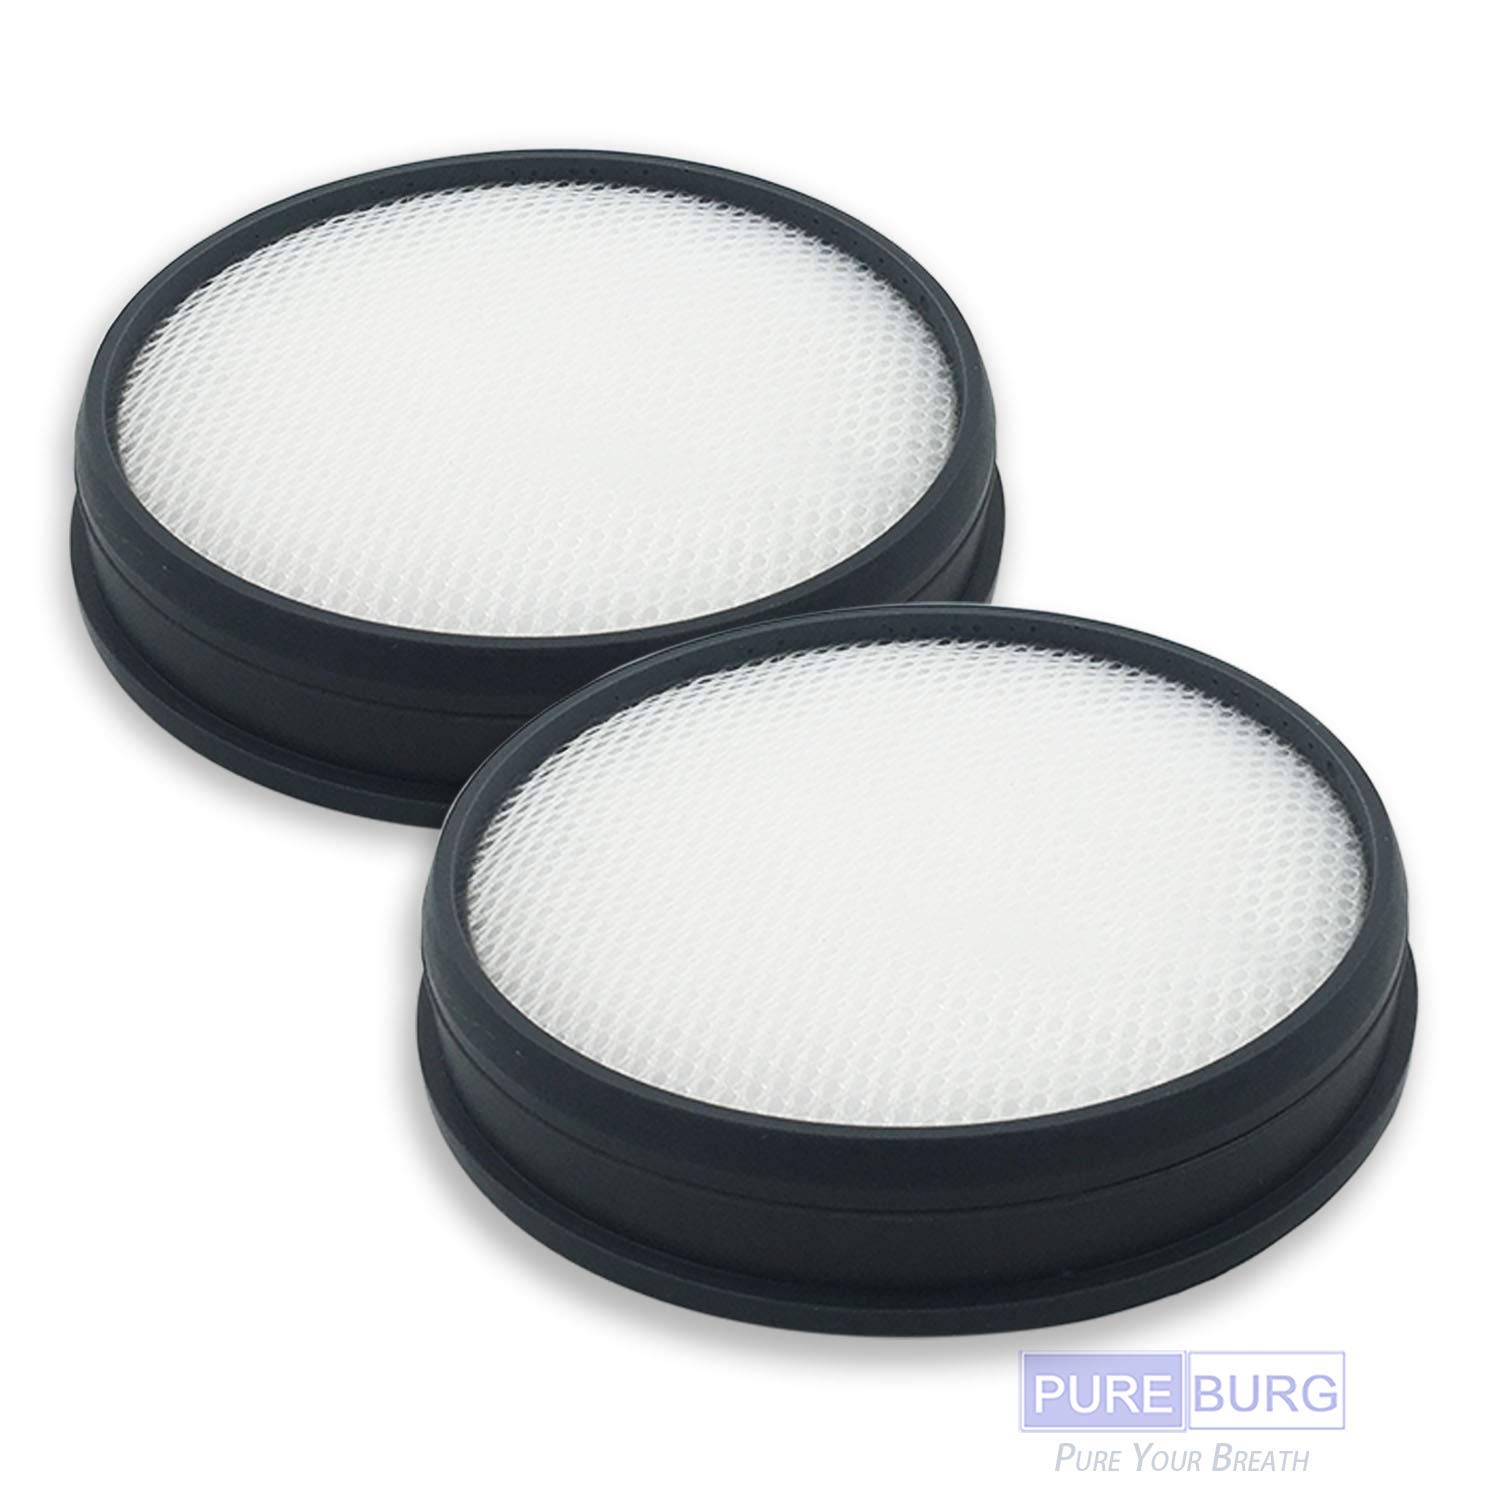 Pureburg 2-Pack Replacement Vacuum Primary Air Filters for Hoover Windtunnel 3 Pro Steerable Pet Bagless Upright Replace Part# 303903001 fits UH70905 UH72400 UH70400